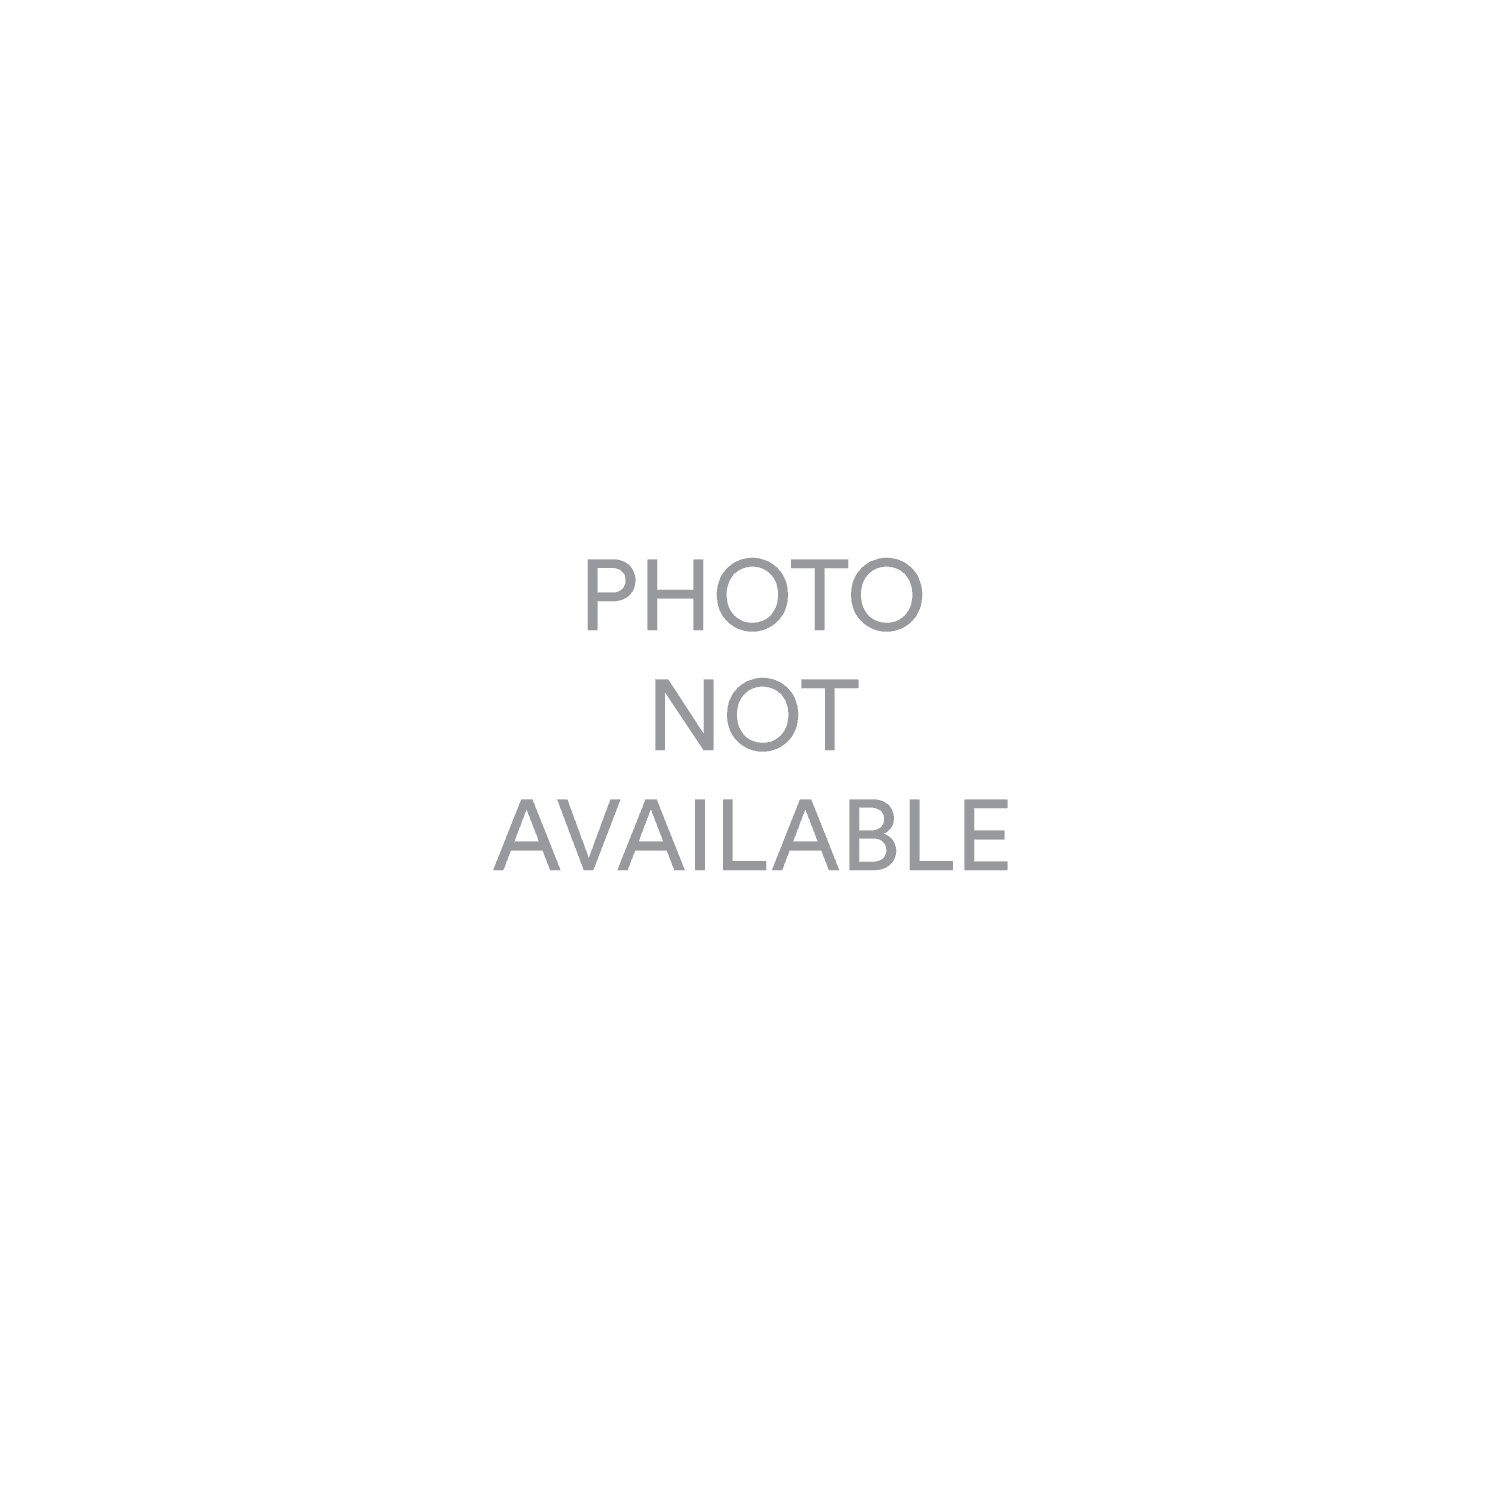 engagement tiffany ideas of under for wedding cheap lovely rings women inspirational